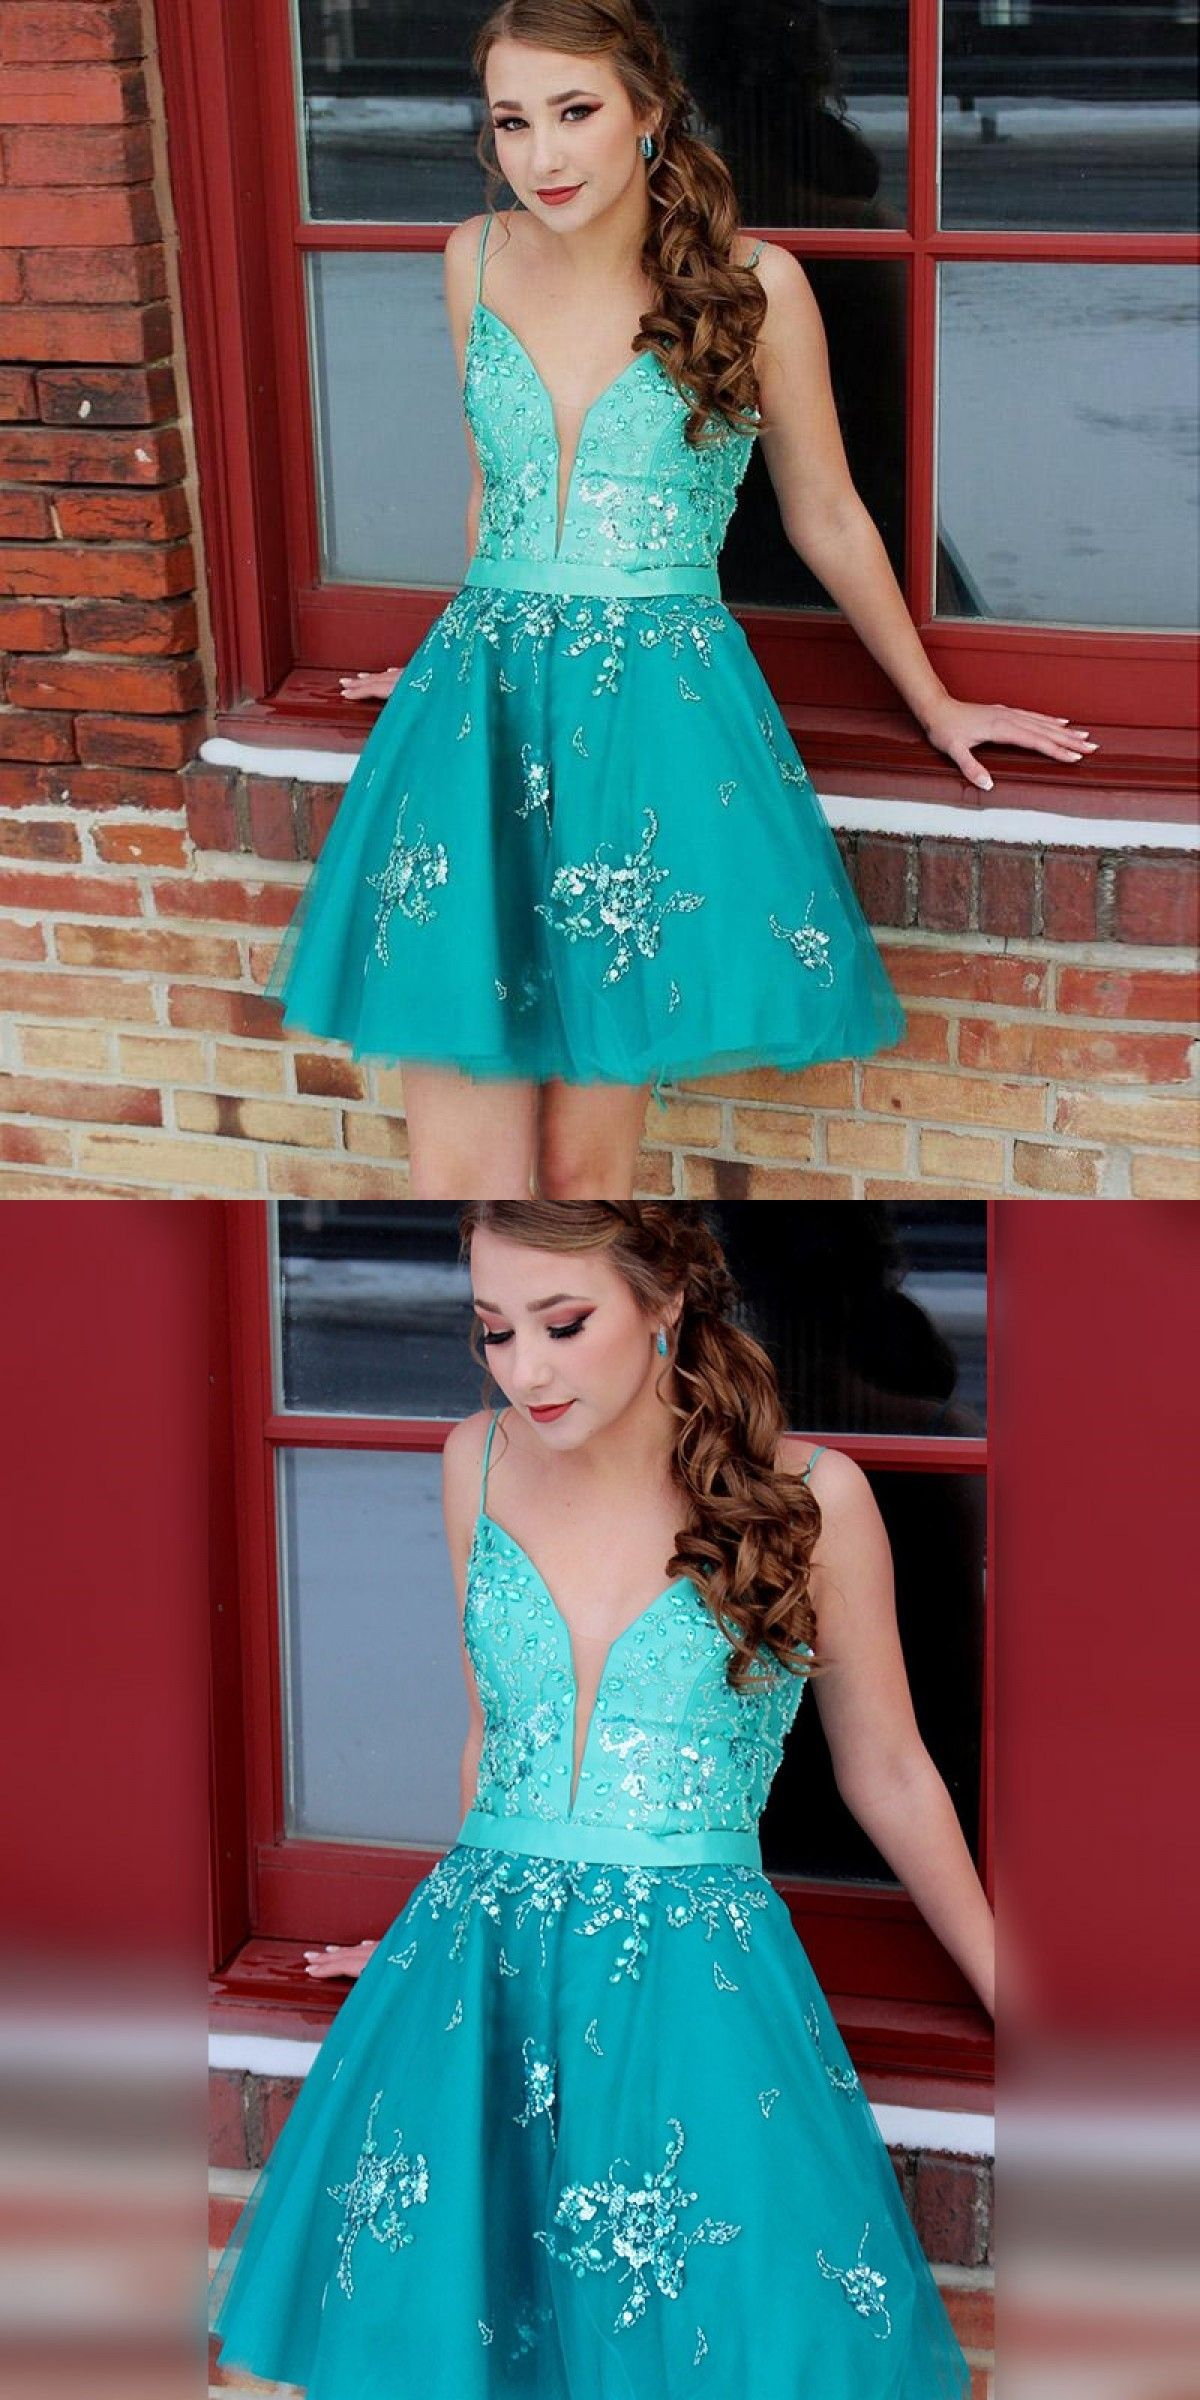 Aline spaghetti straps laceup turquoise homecoming dress with